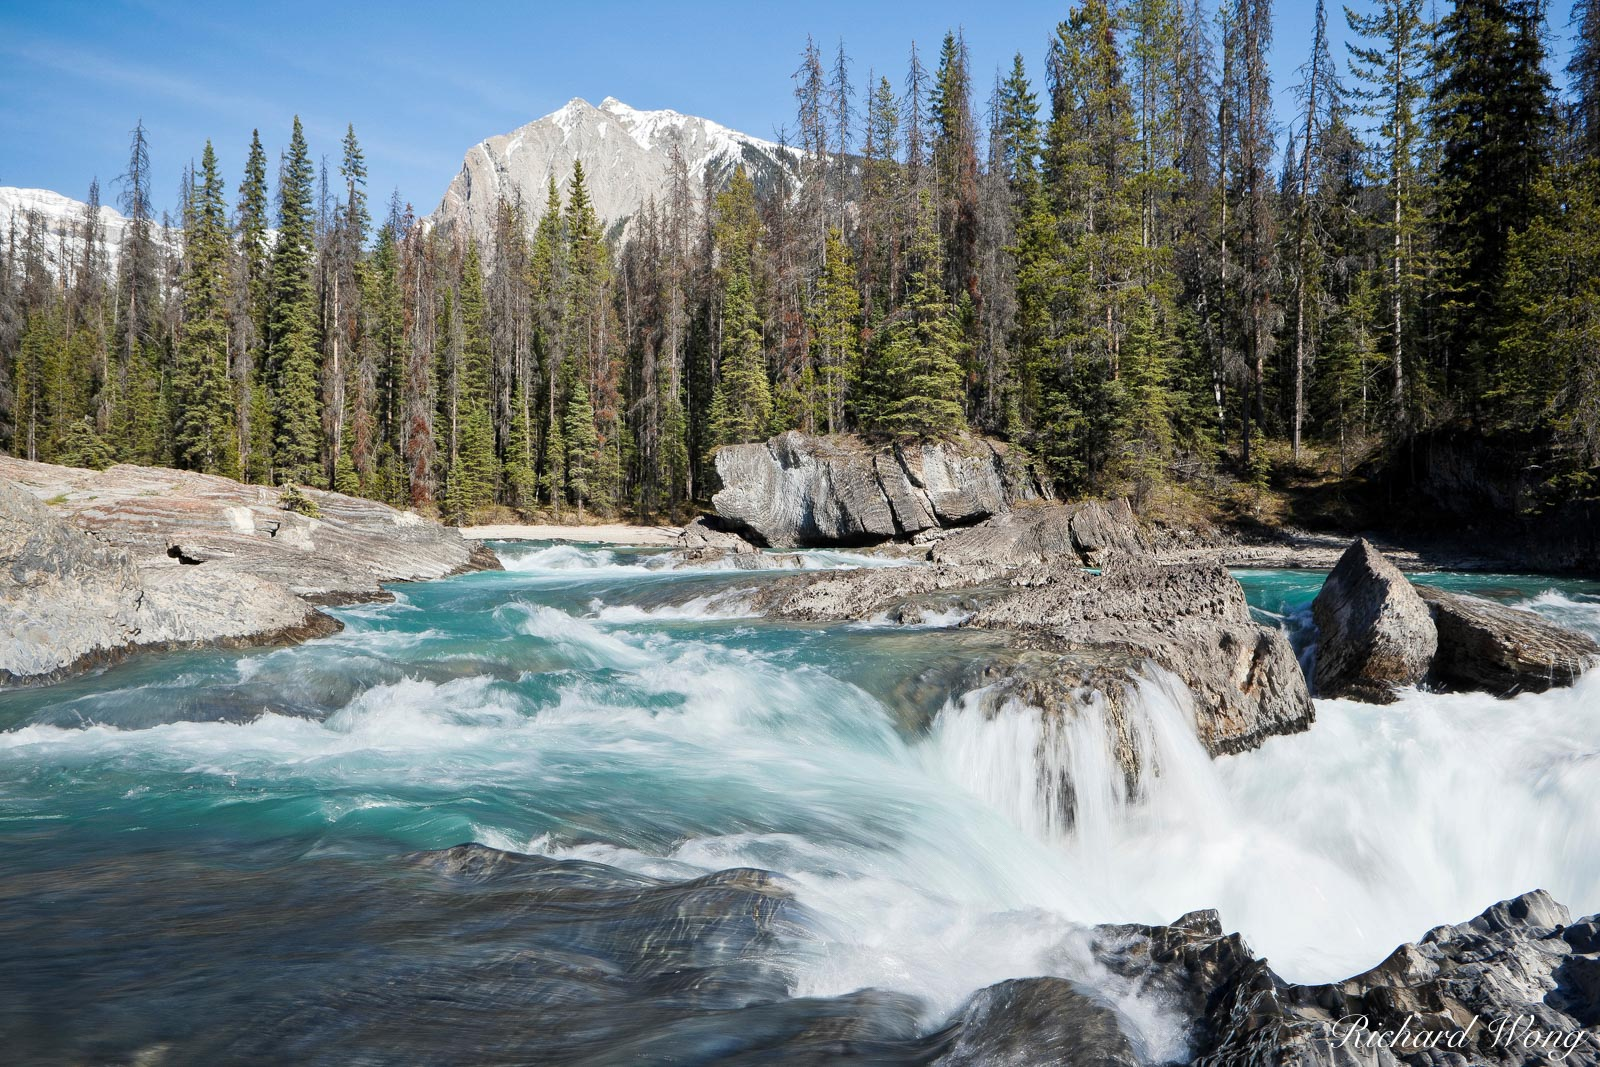 Powerful Rapids of Kicking Horse River About to Flow Through Natural Bridge with Mt. Dennis in Background, Yoho National Park, British Columbia, Canada, Photo